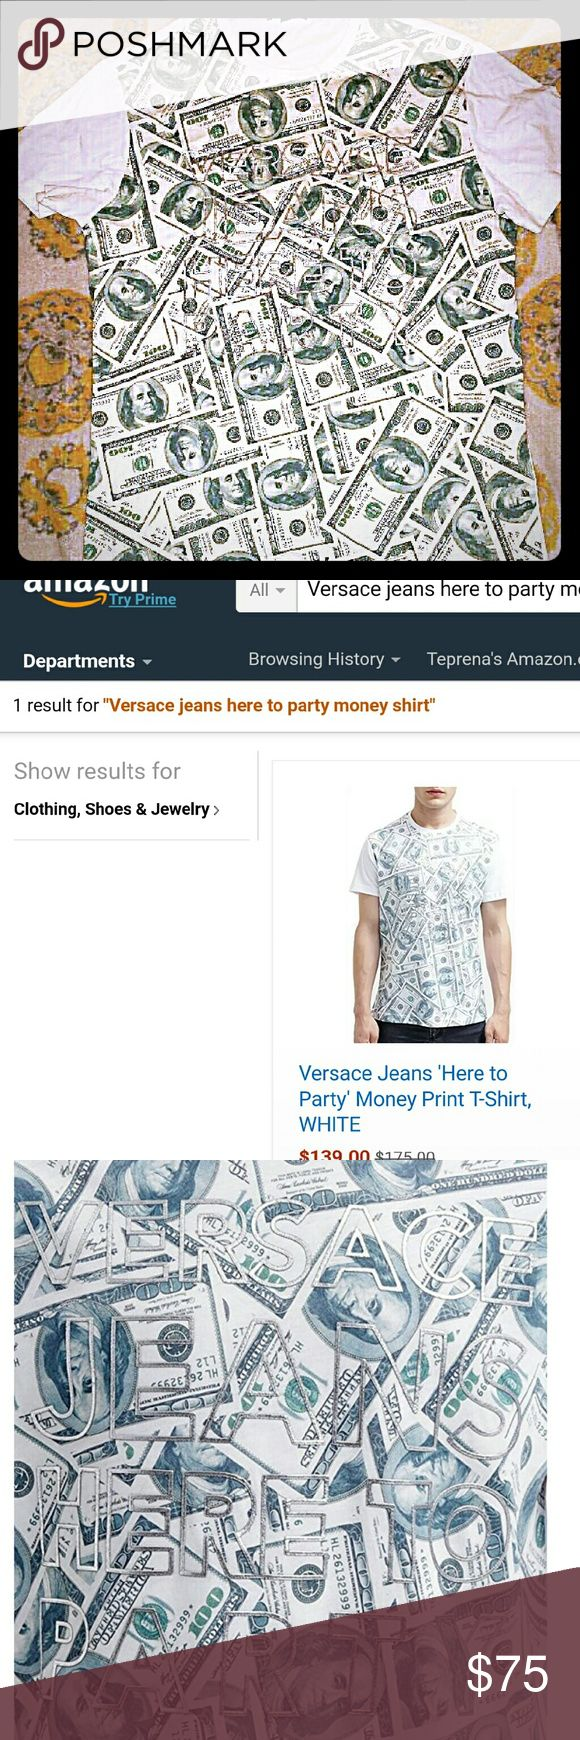 Versace Jean shirt only tried on once it was to small for my guy 100% Authenic super soft size medium graphic Versace men t-shirt the shirt says Versace jeans here to party that 3d holographic sold out at a lot of places found 1 left at amazon on sale for 139.00 Originally 175 Versace jeans  Shirts Tees - Short Sleeve